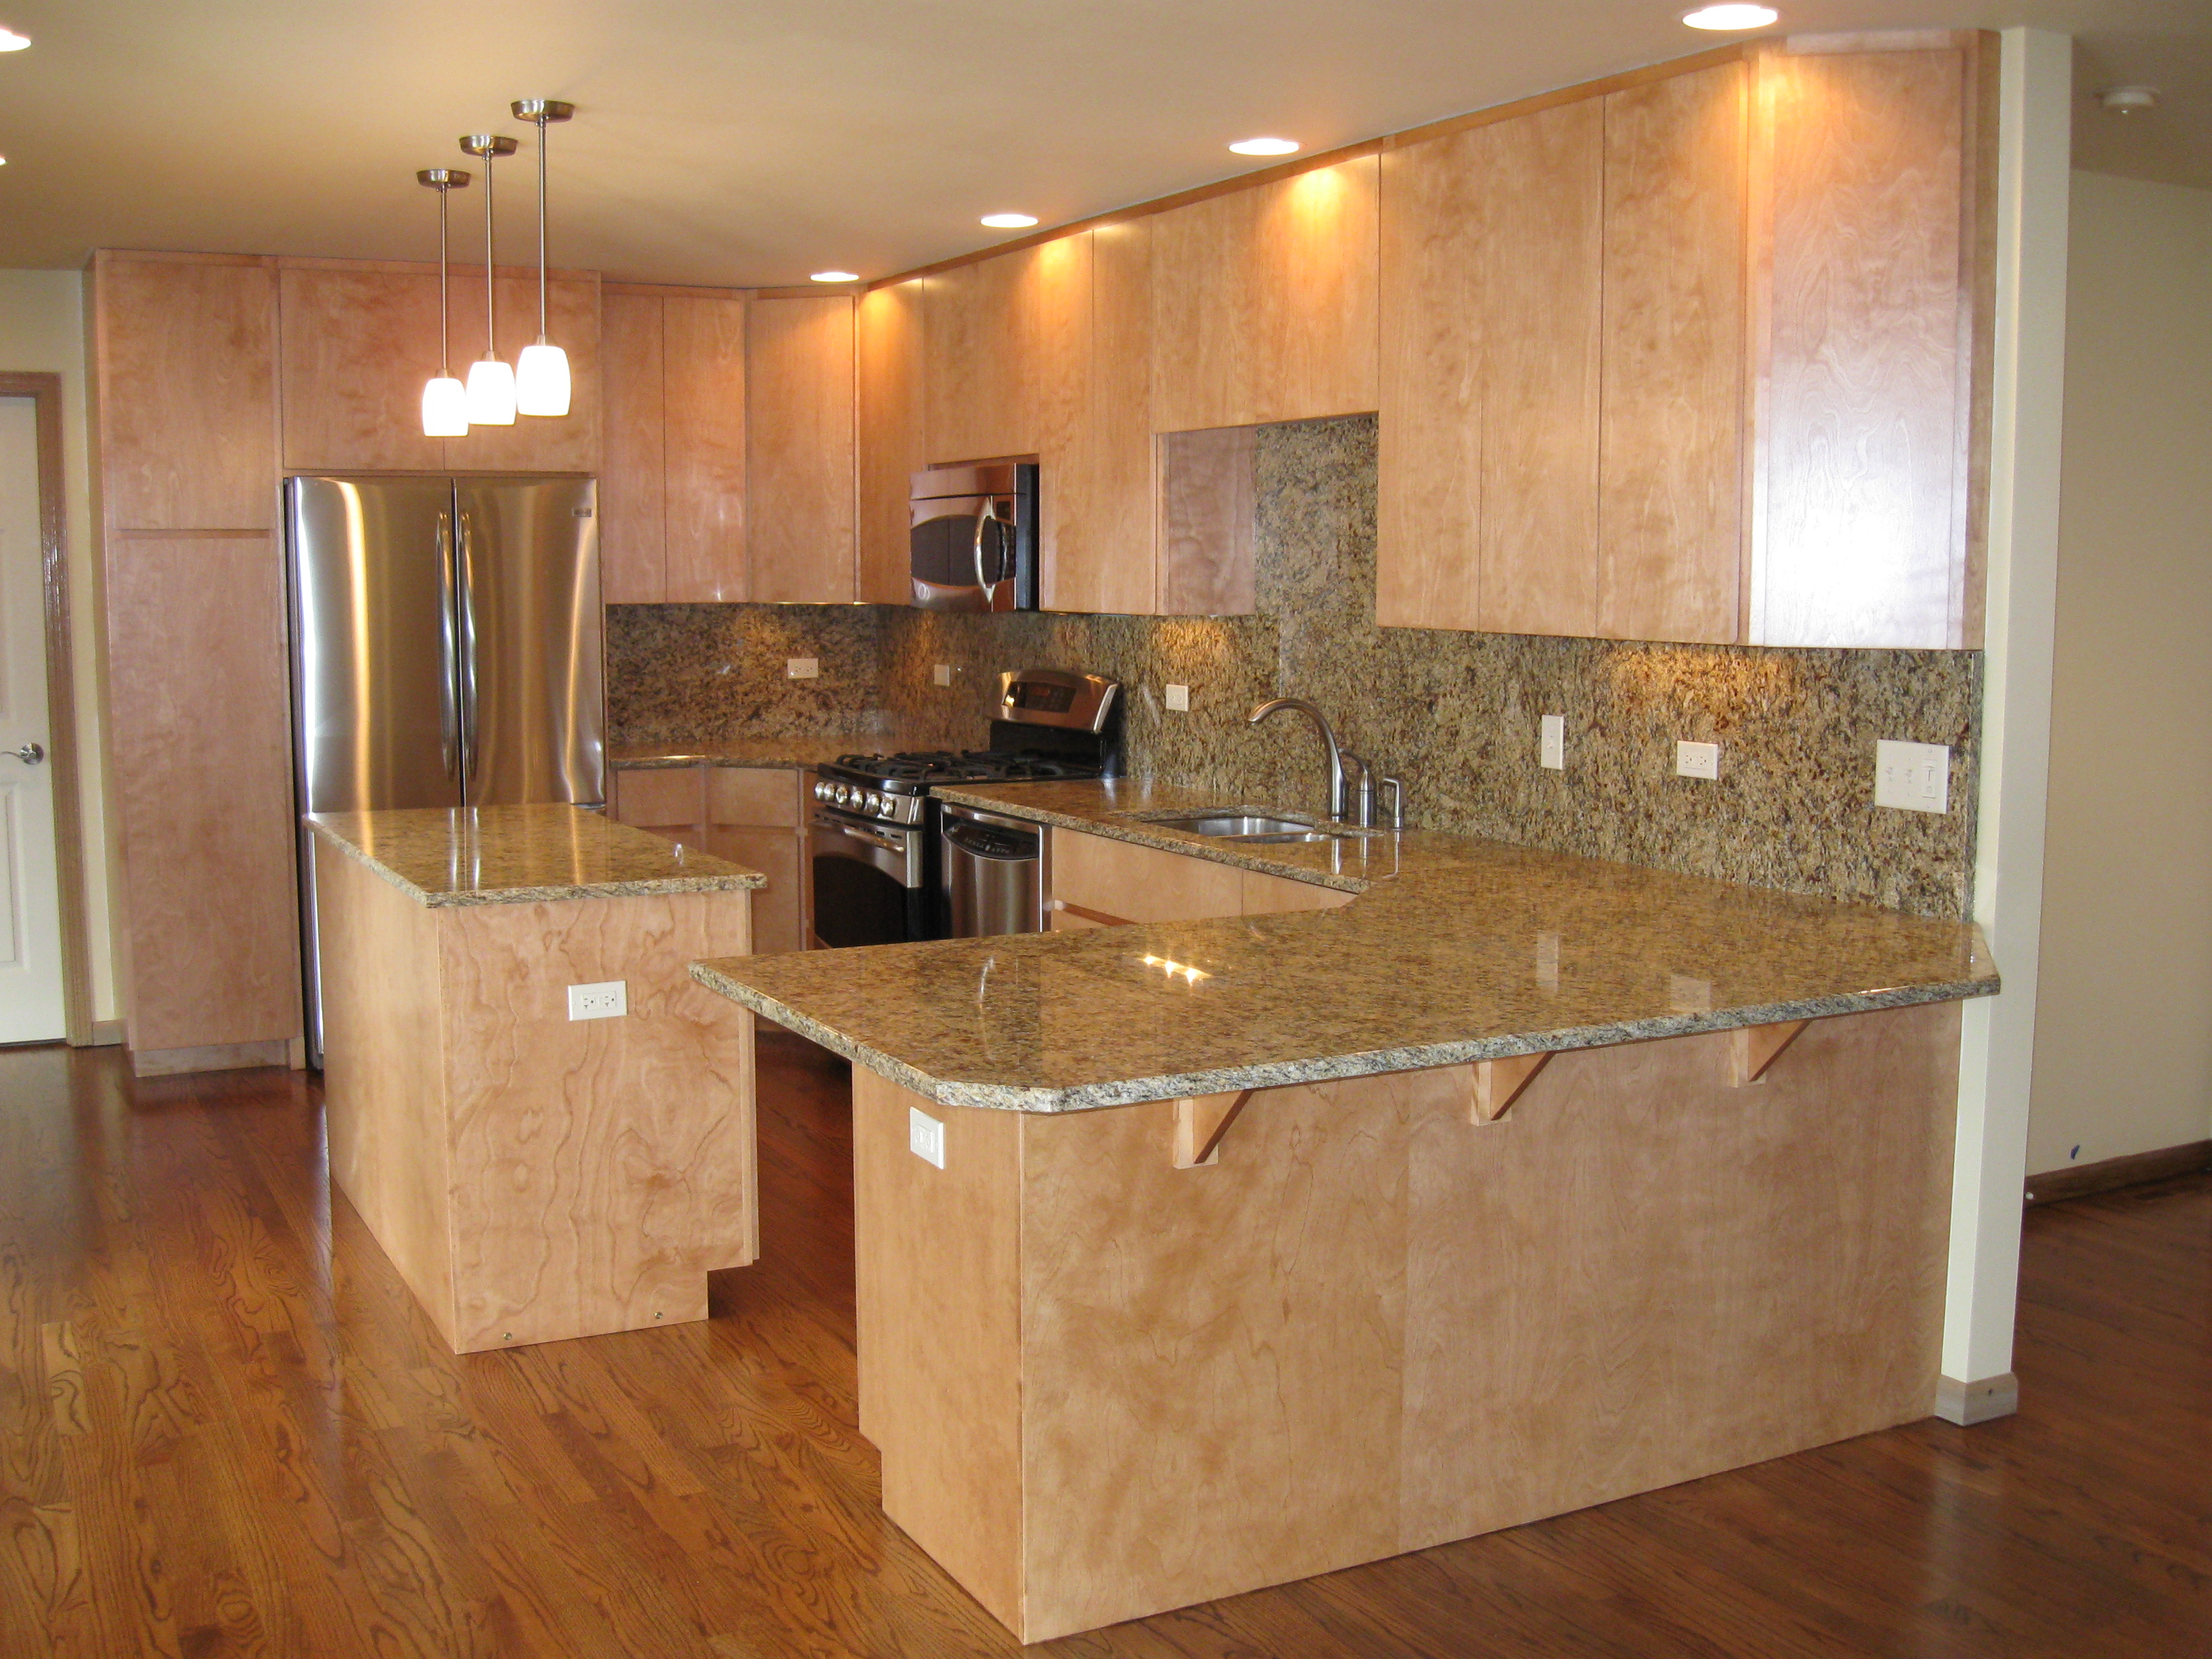 Kitchen with island and light cabinets